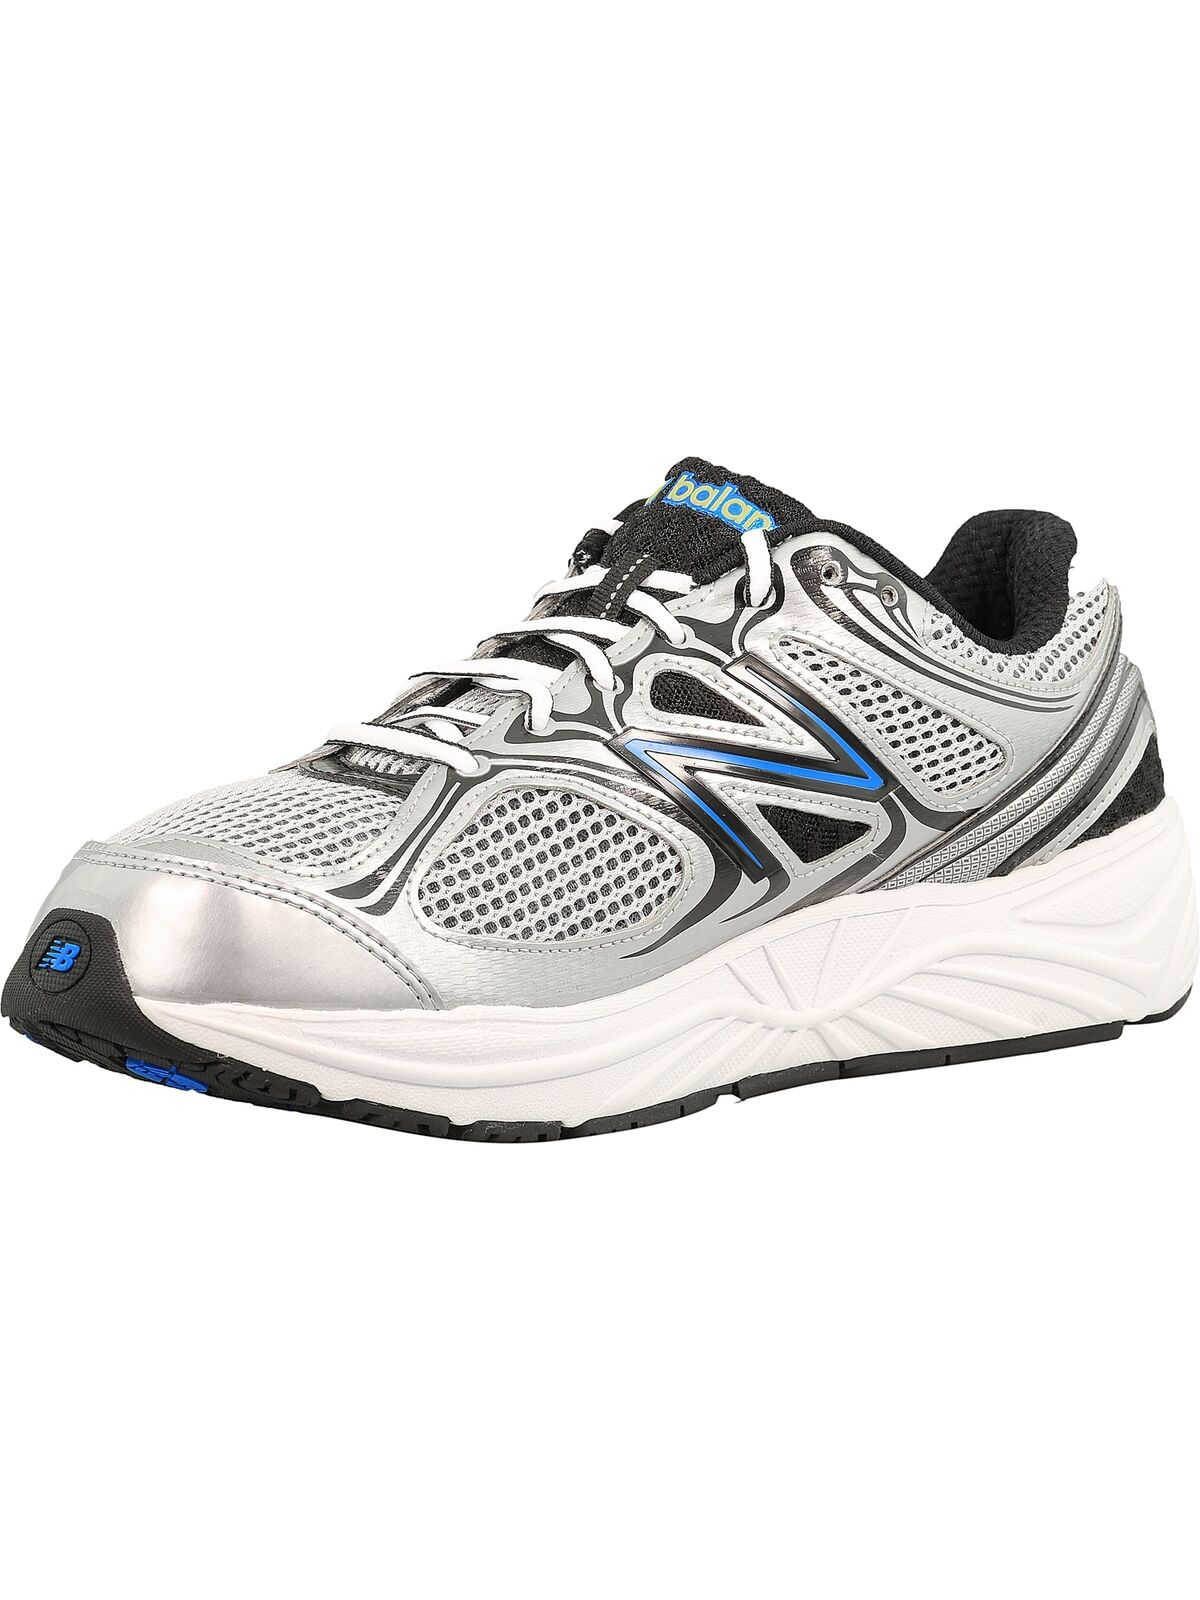 New Balance Men's M840 Ankle-High Mesh Running shoes